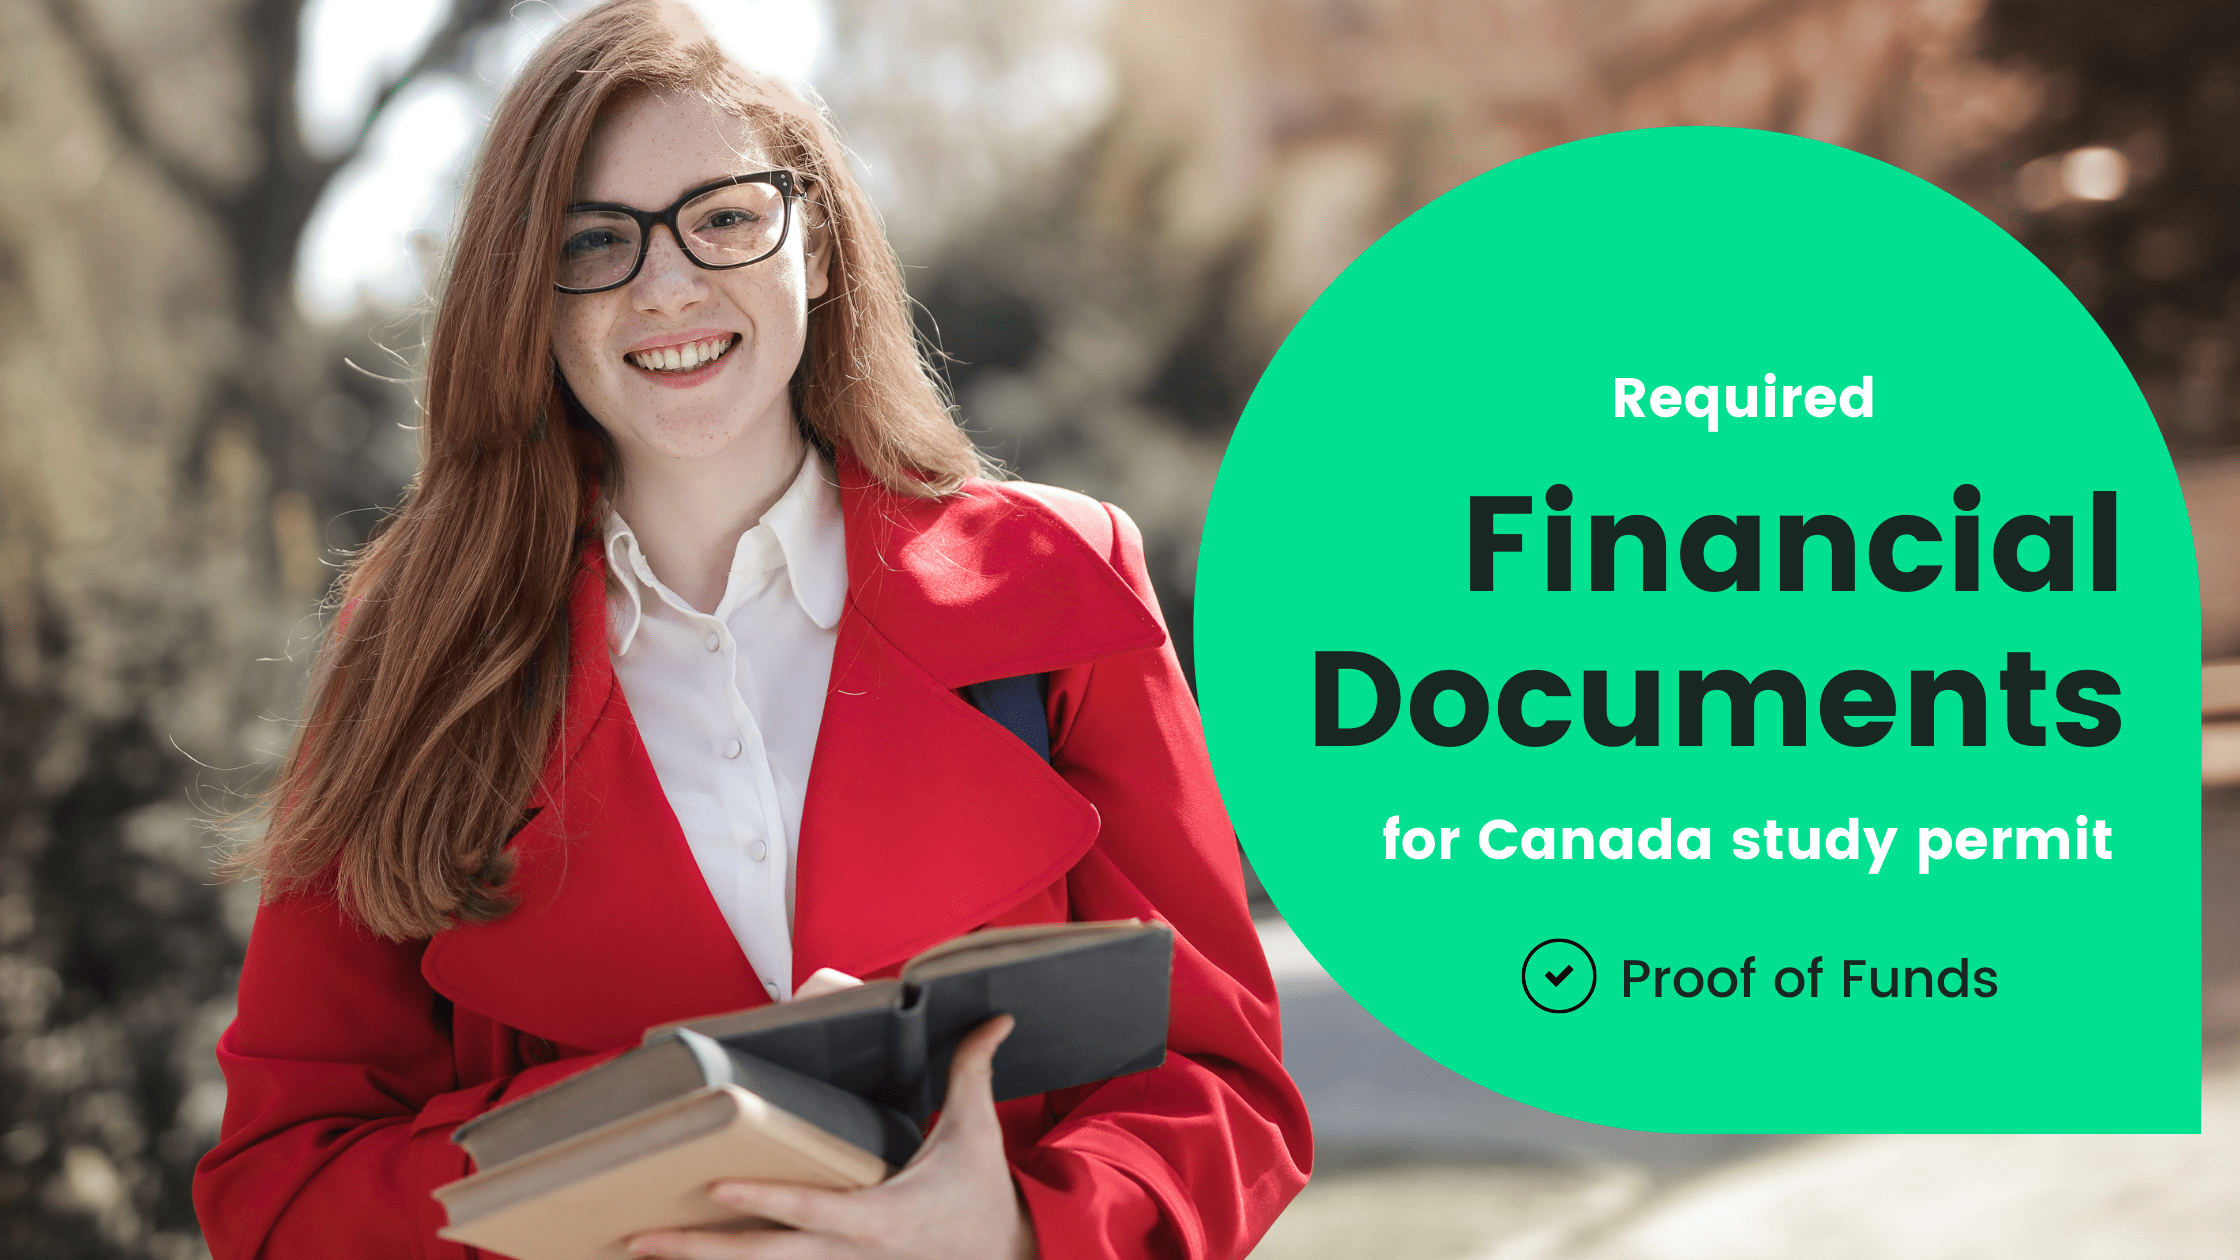 Proof of Fund: Required Financial Documents for Canada Study Permit